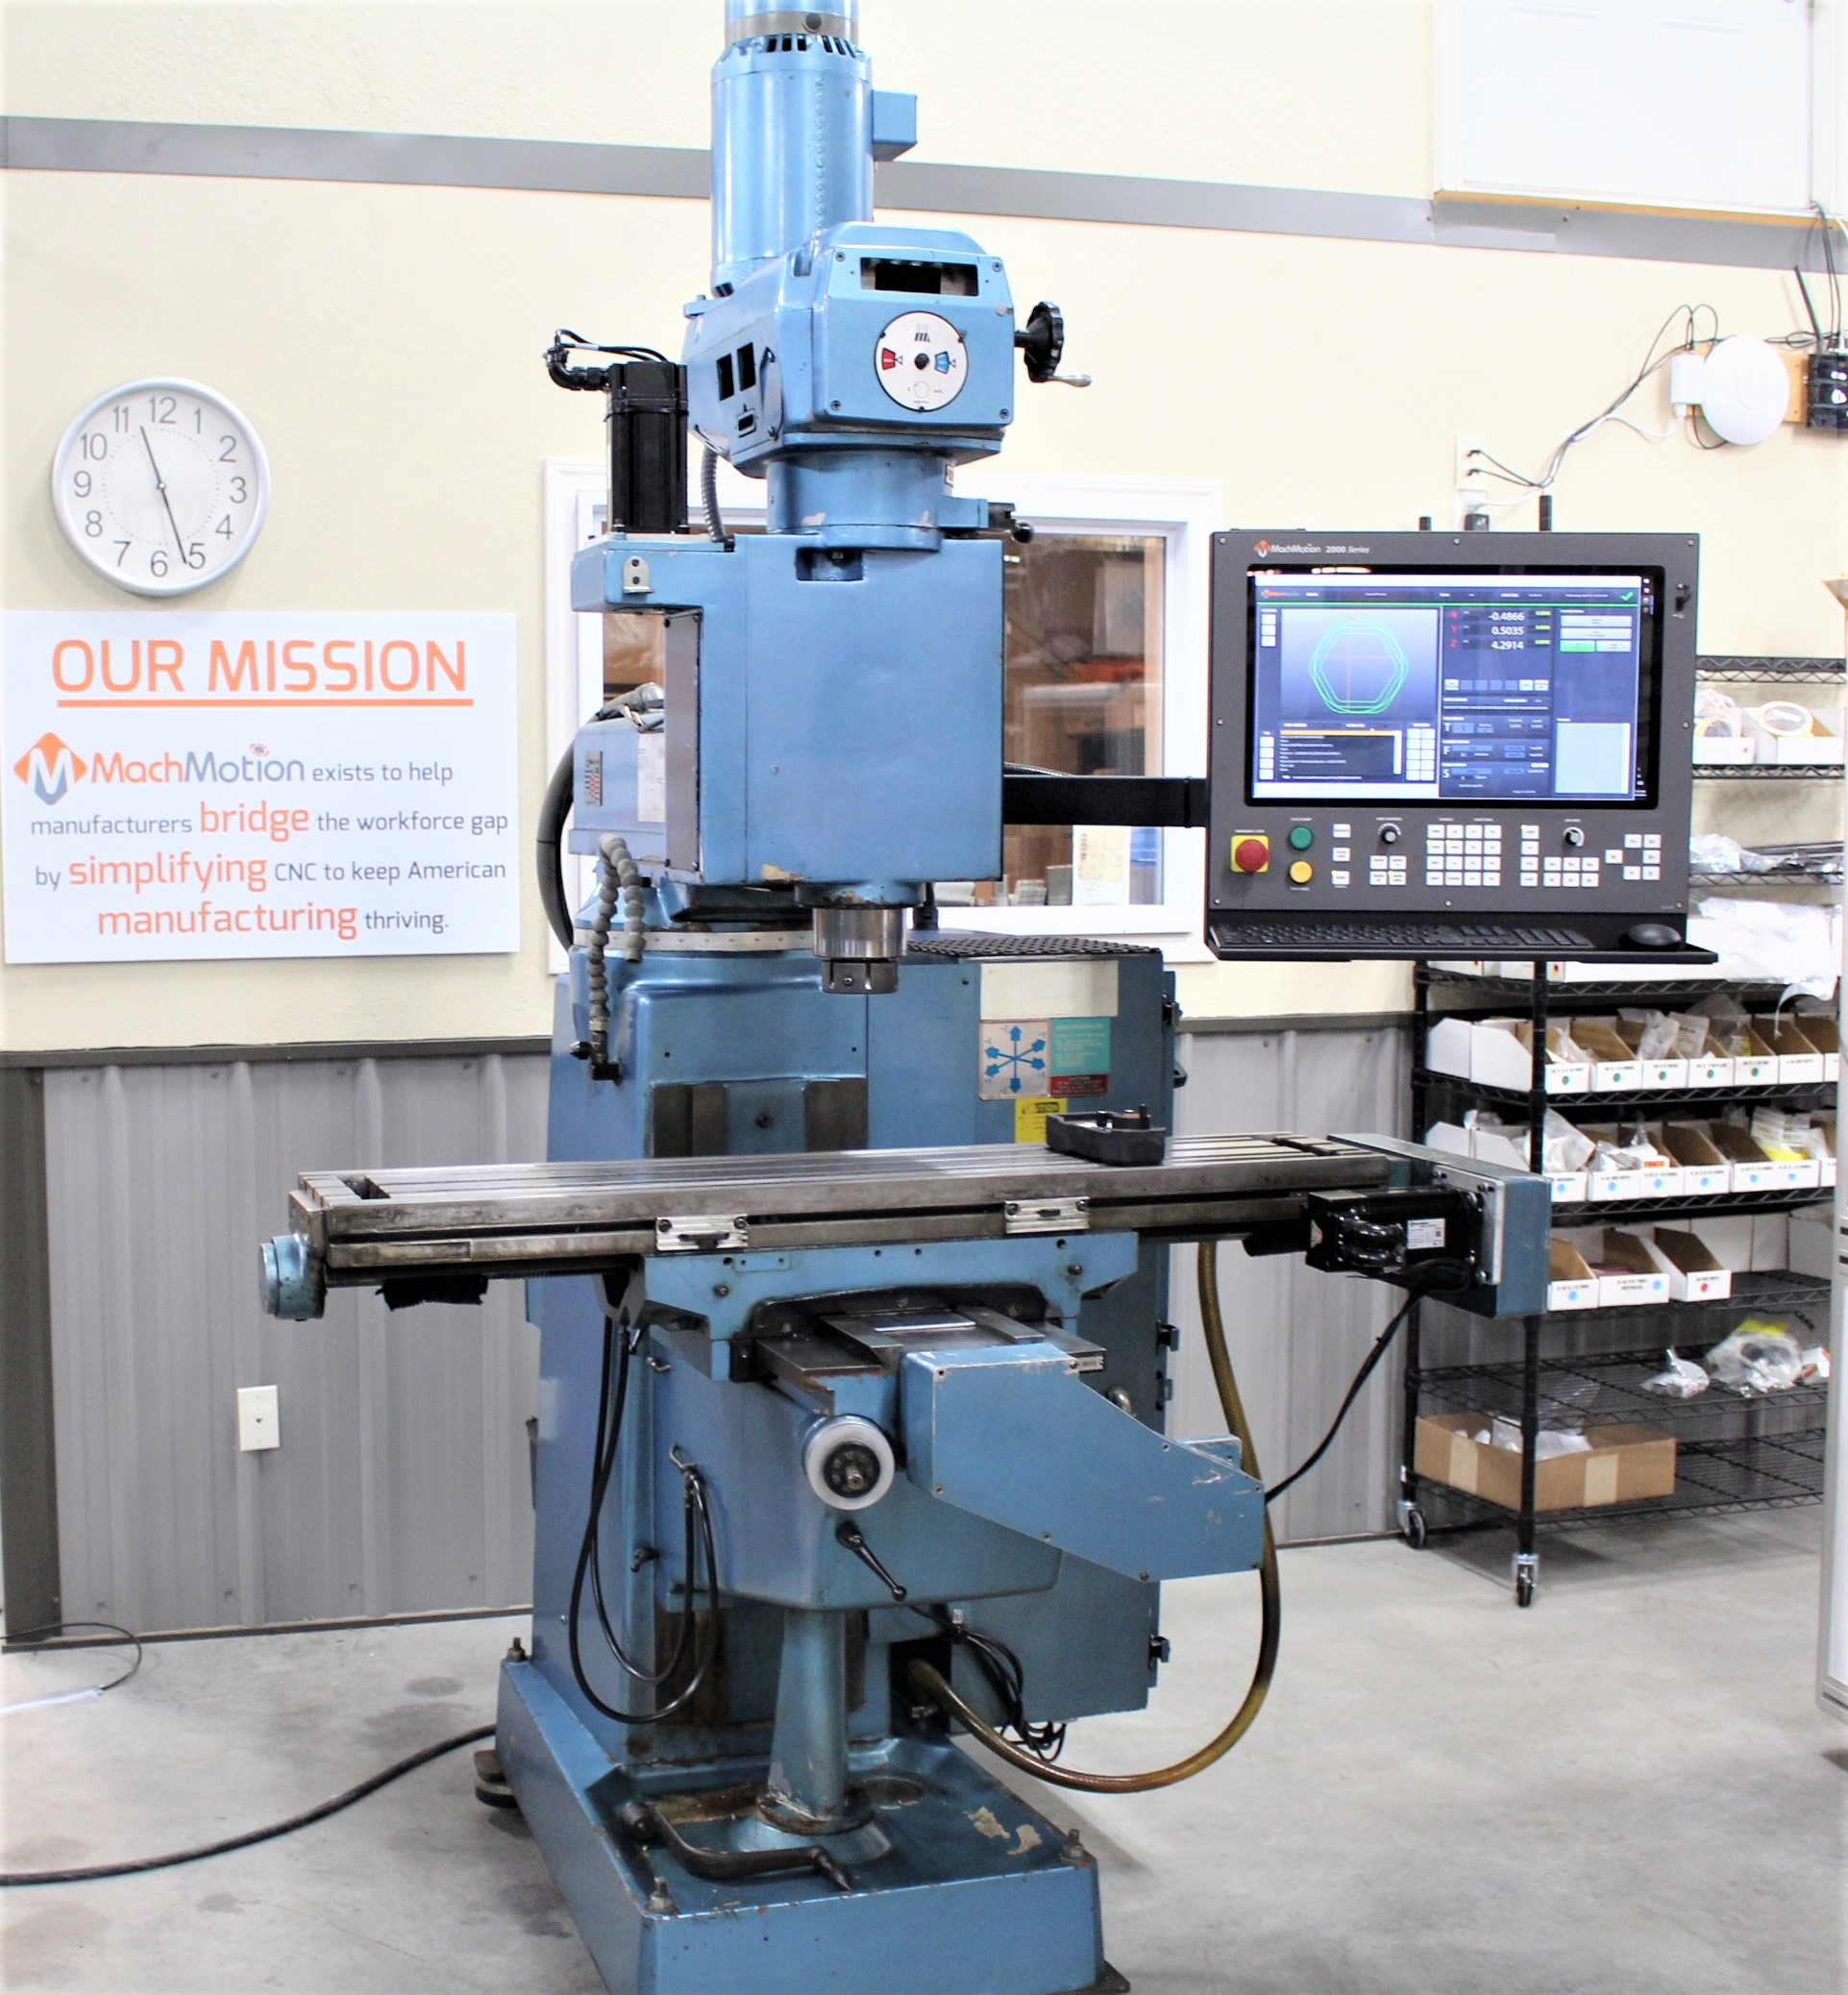 LAGUN KNEE MILL W/ 5HP SPINDLE